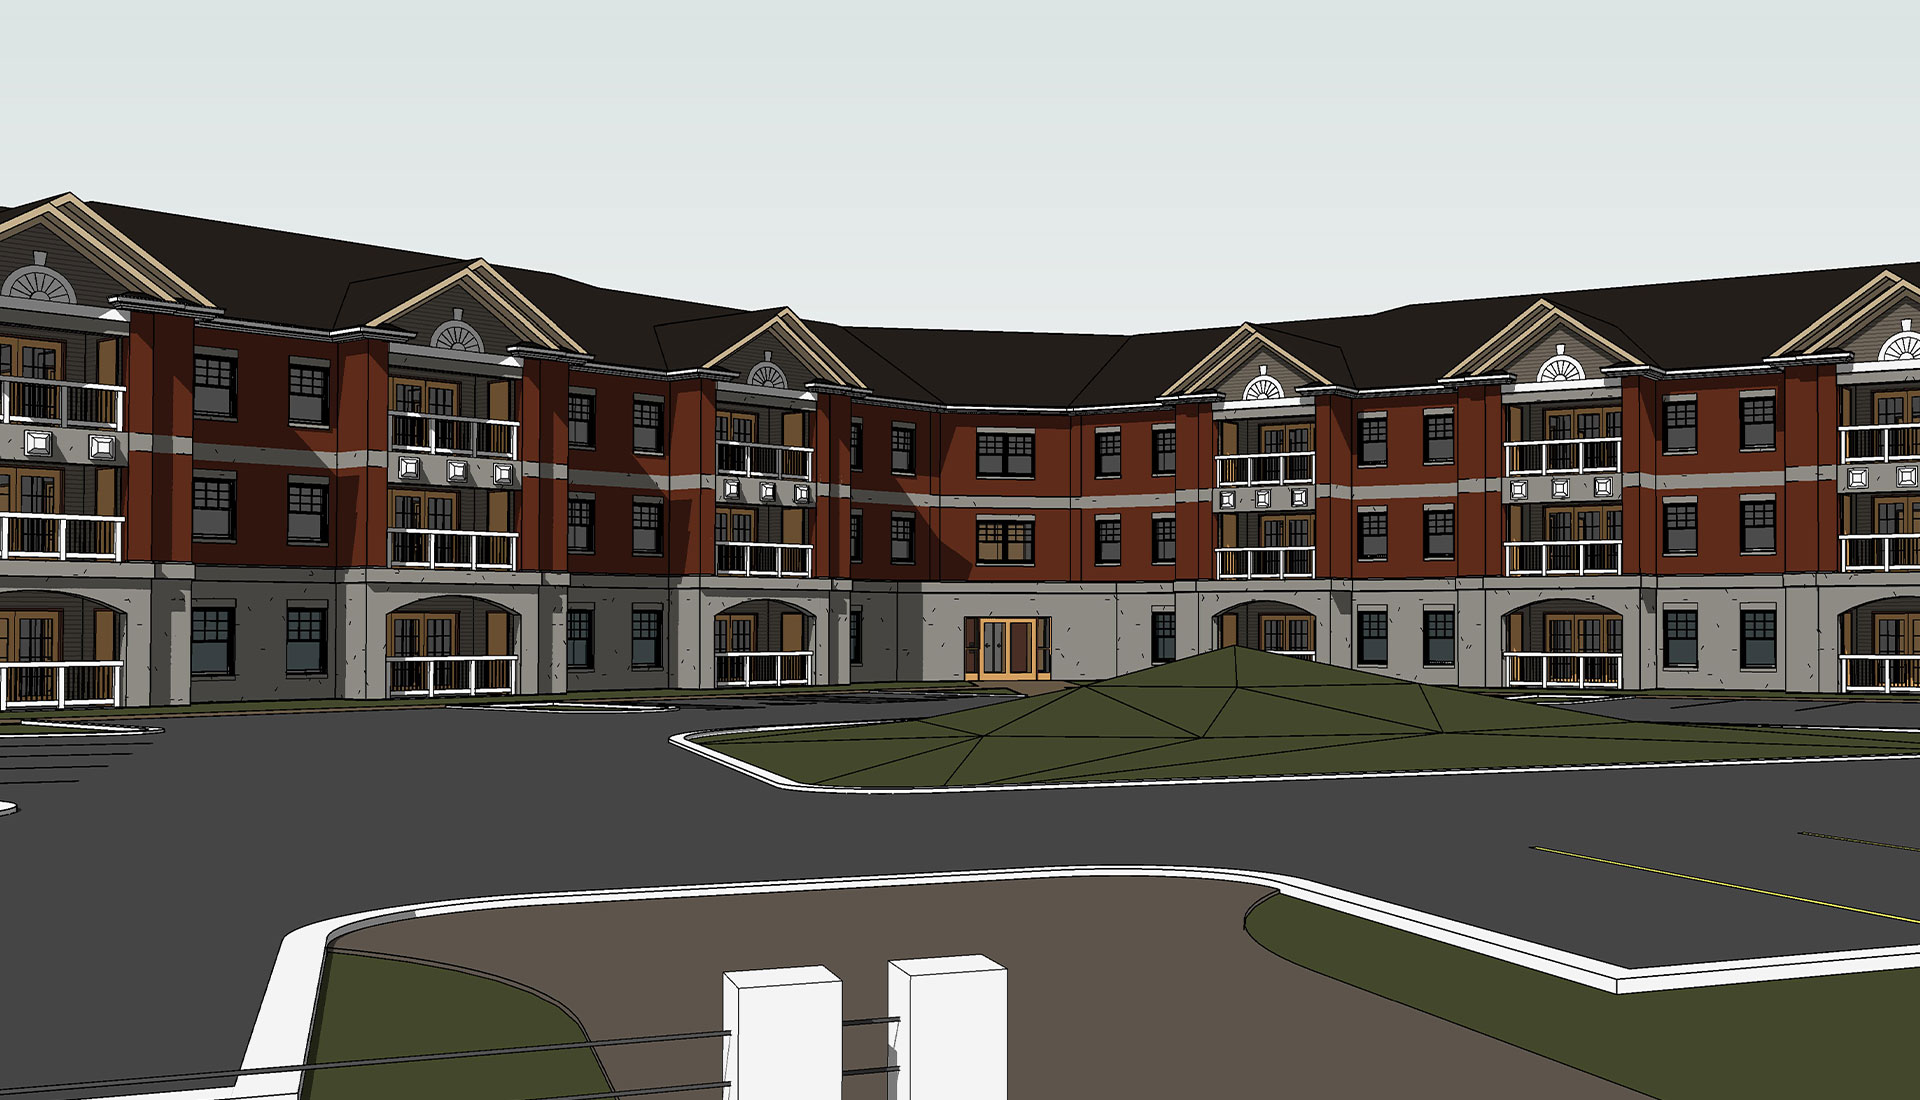 Front-Elevation-3D-BIM-Architectural-Model_Residential-Project_Architectural-Revit-Modeling-by-United-BIM